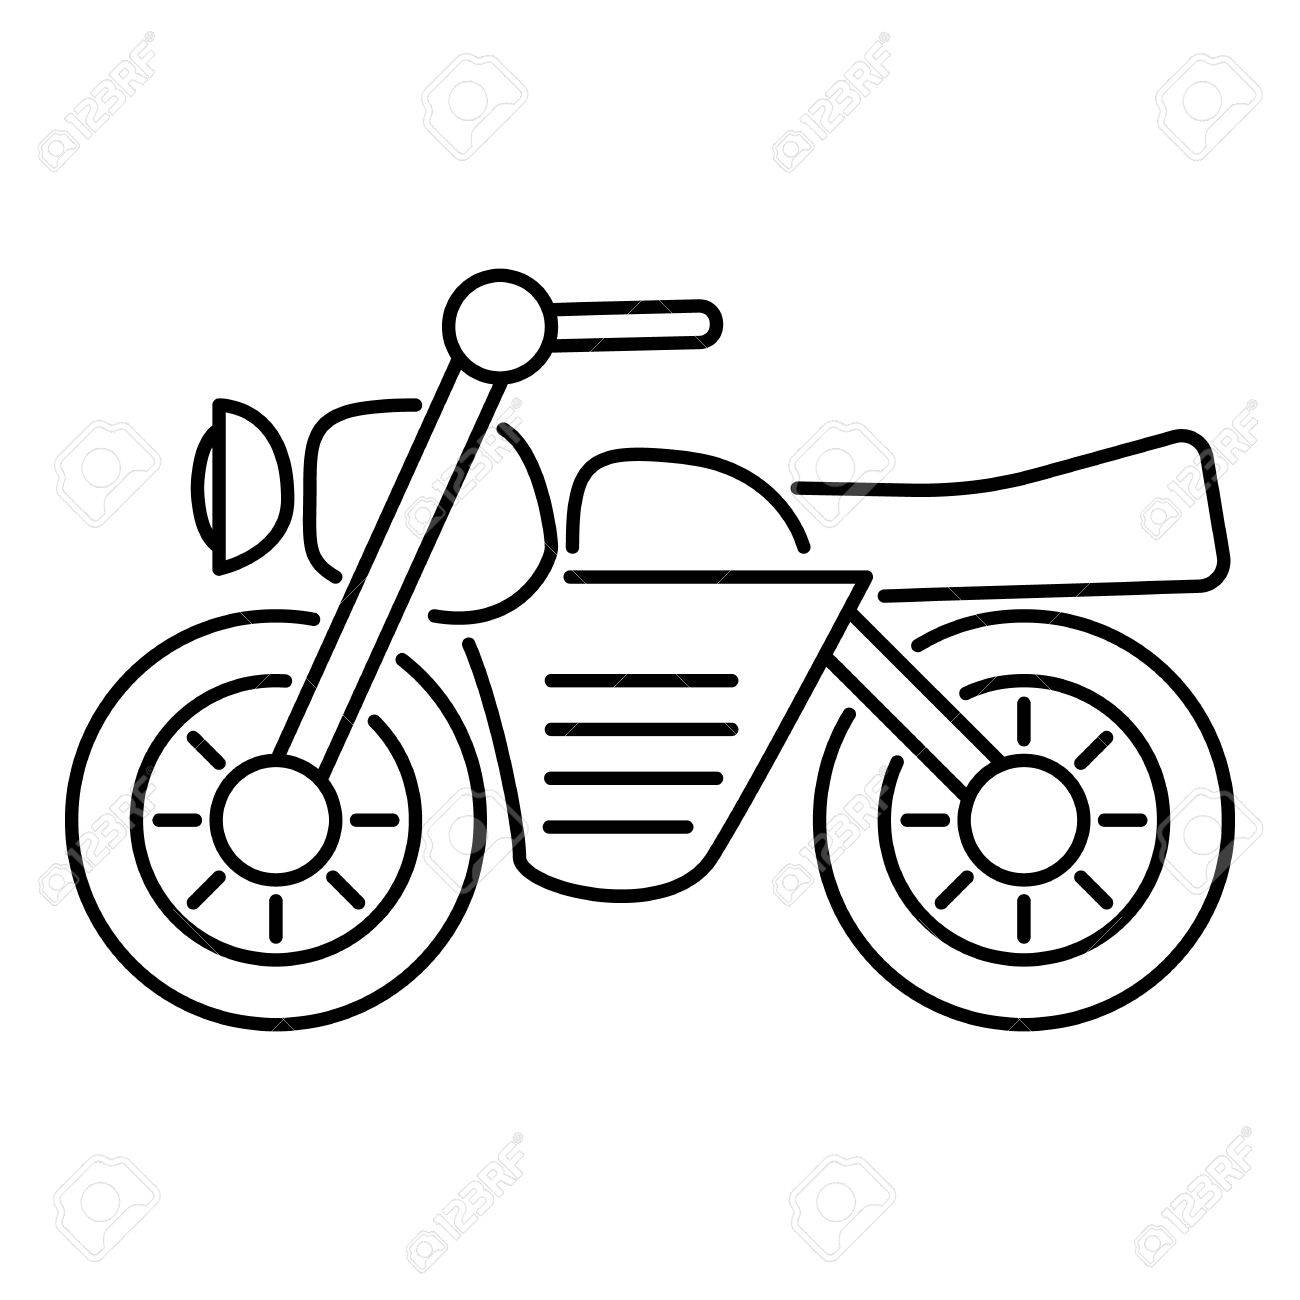 motorbike outline clipart  Motorcycle Icon. Outline Illustration Of Motorcycle Vector Icon ...